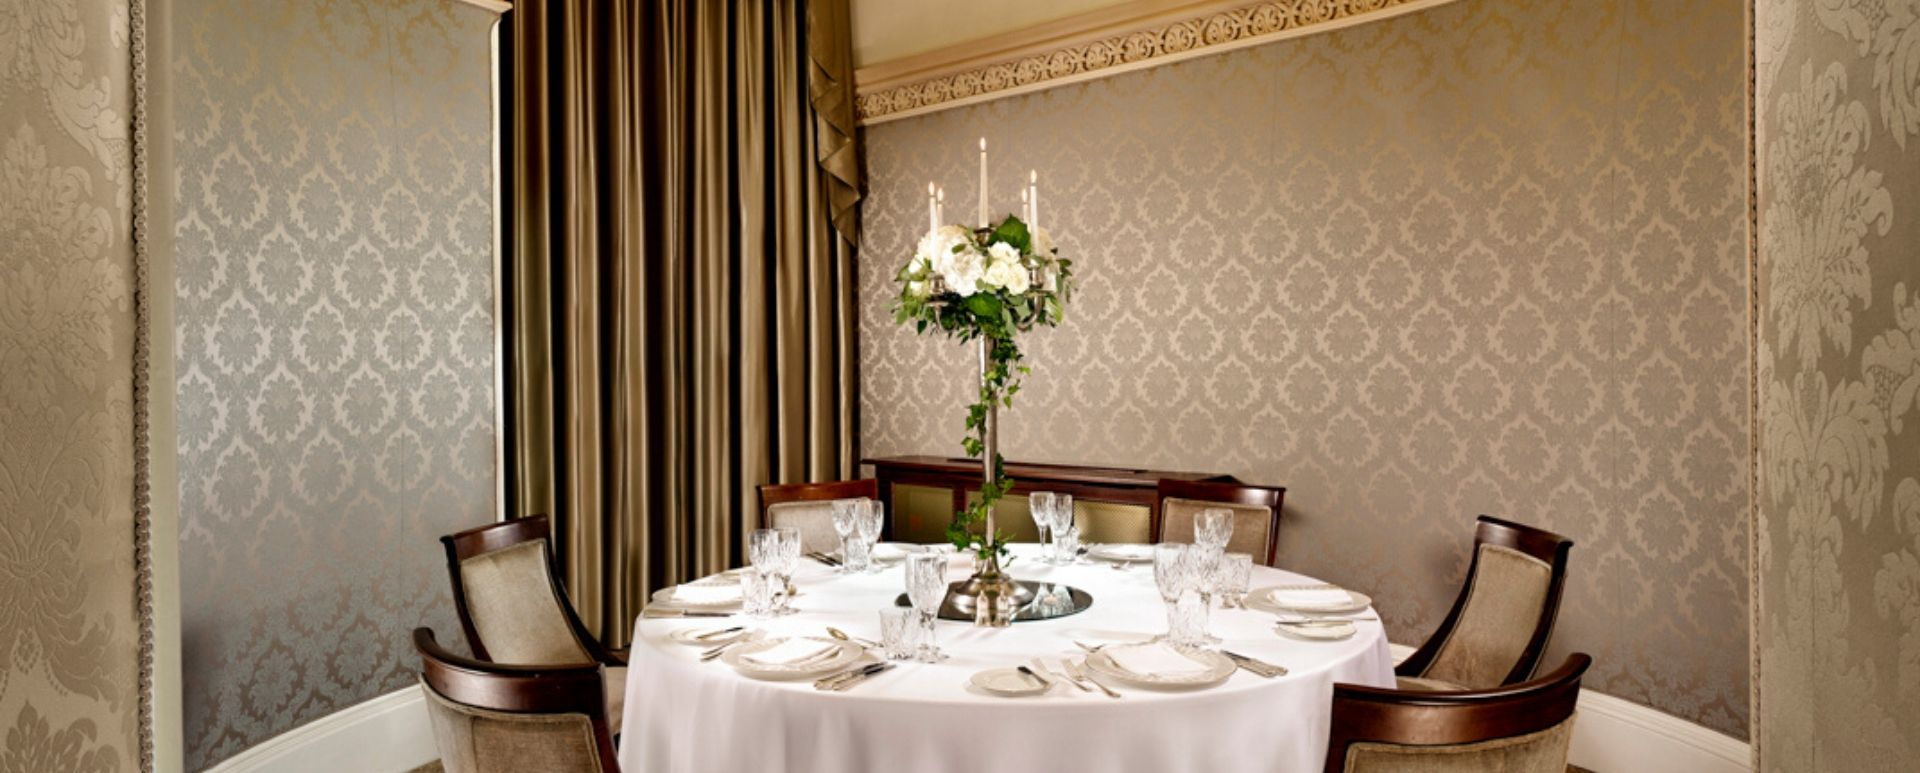 The Teller private dining